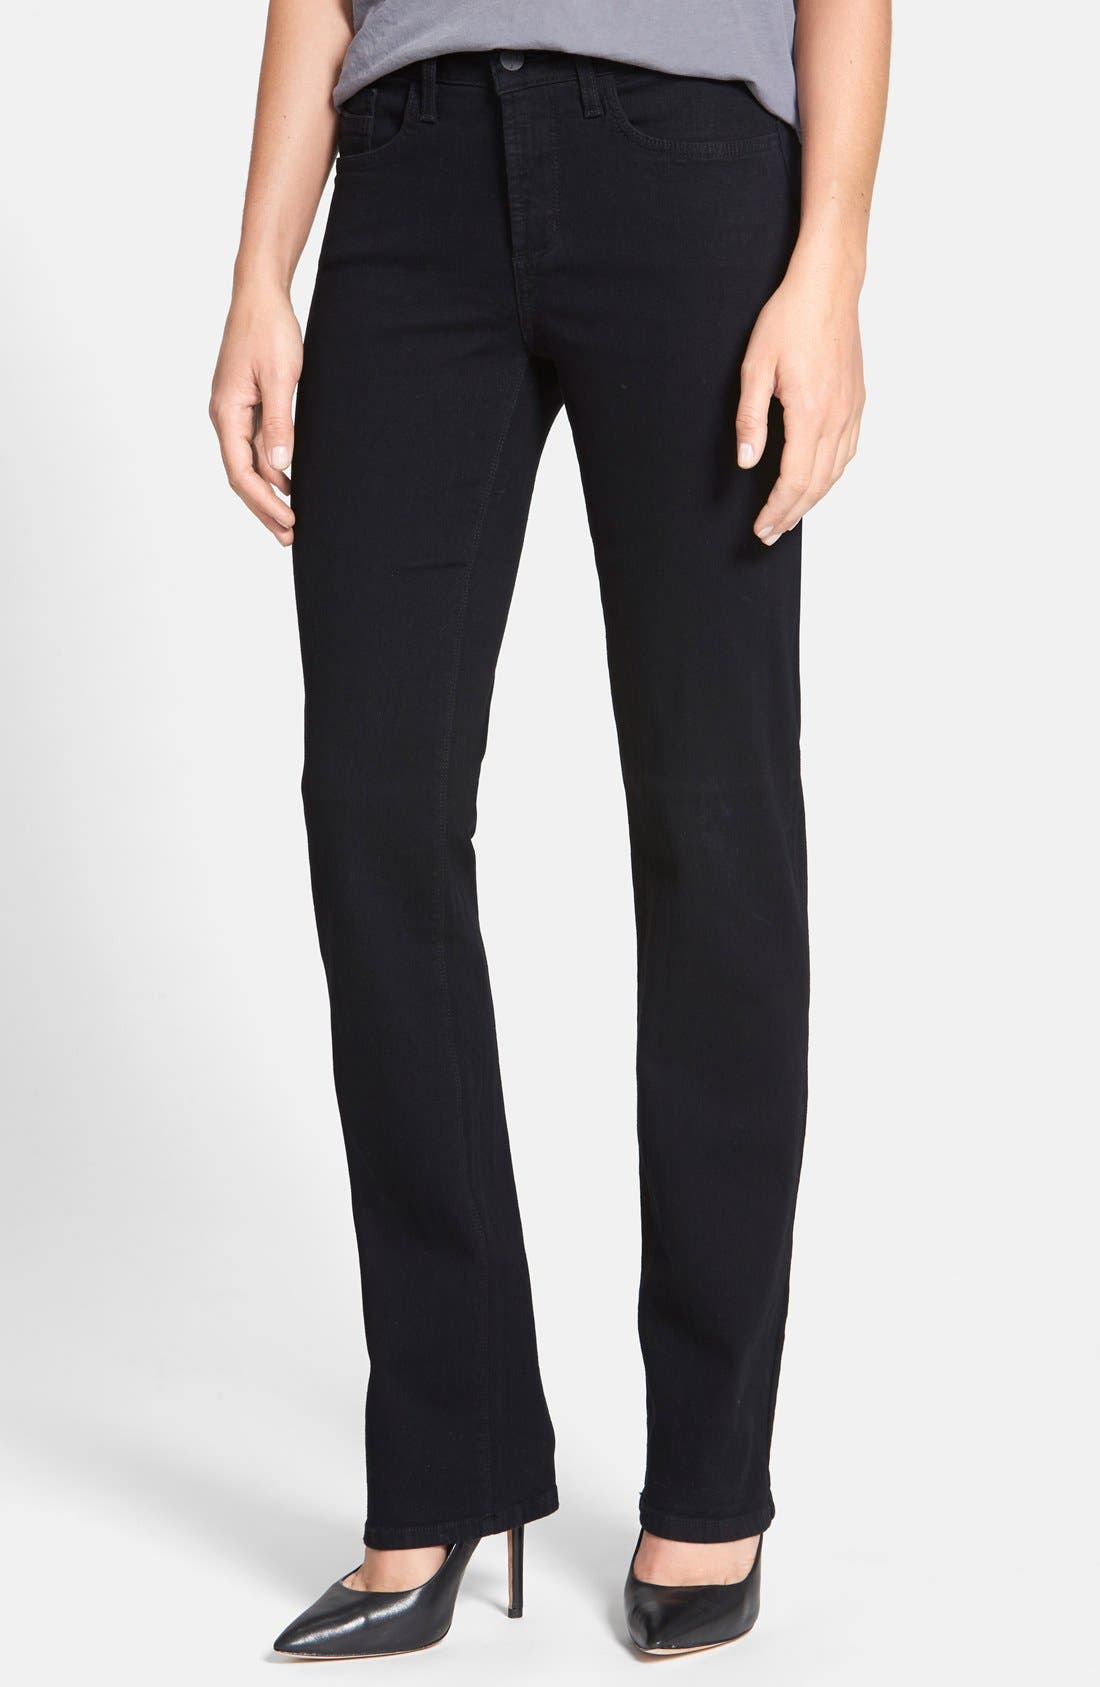 'Marilyn' Stretch Straight Leg Jeans,                         Main,                         color, Black